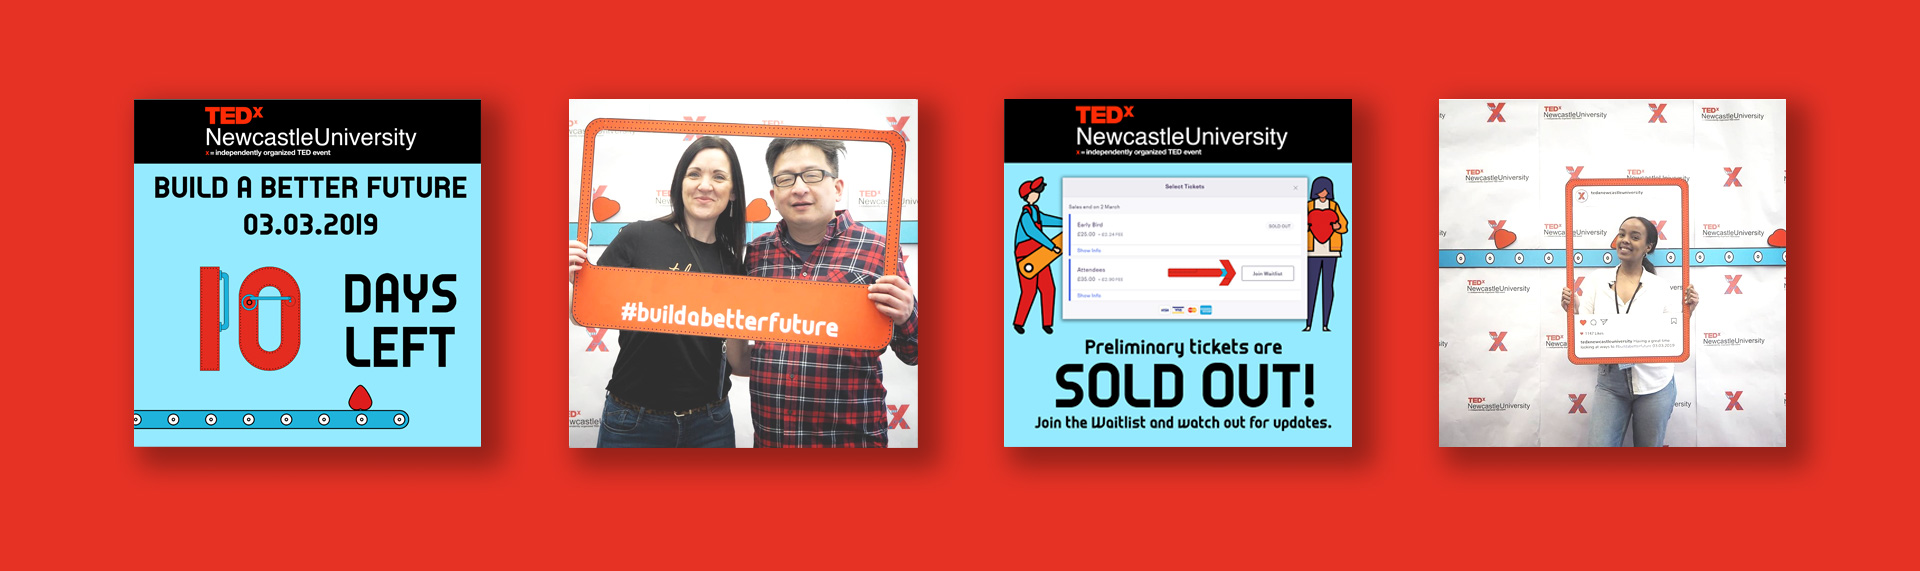 TEDx-Conference Branding by THAT Branding Company - Creative Design and Branding Agency - Social Media support.jpg